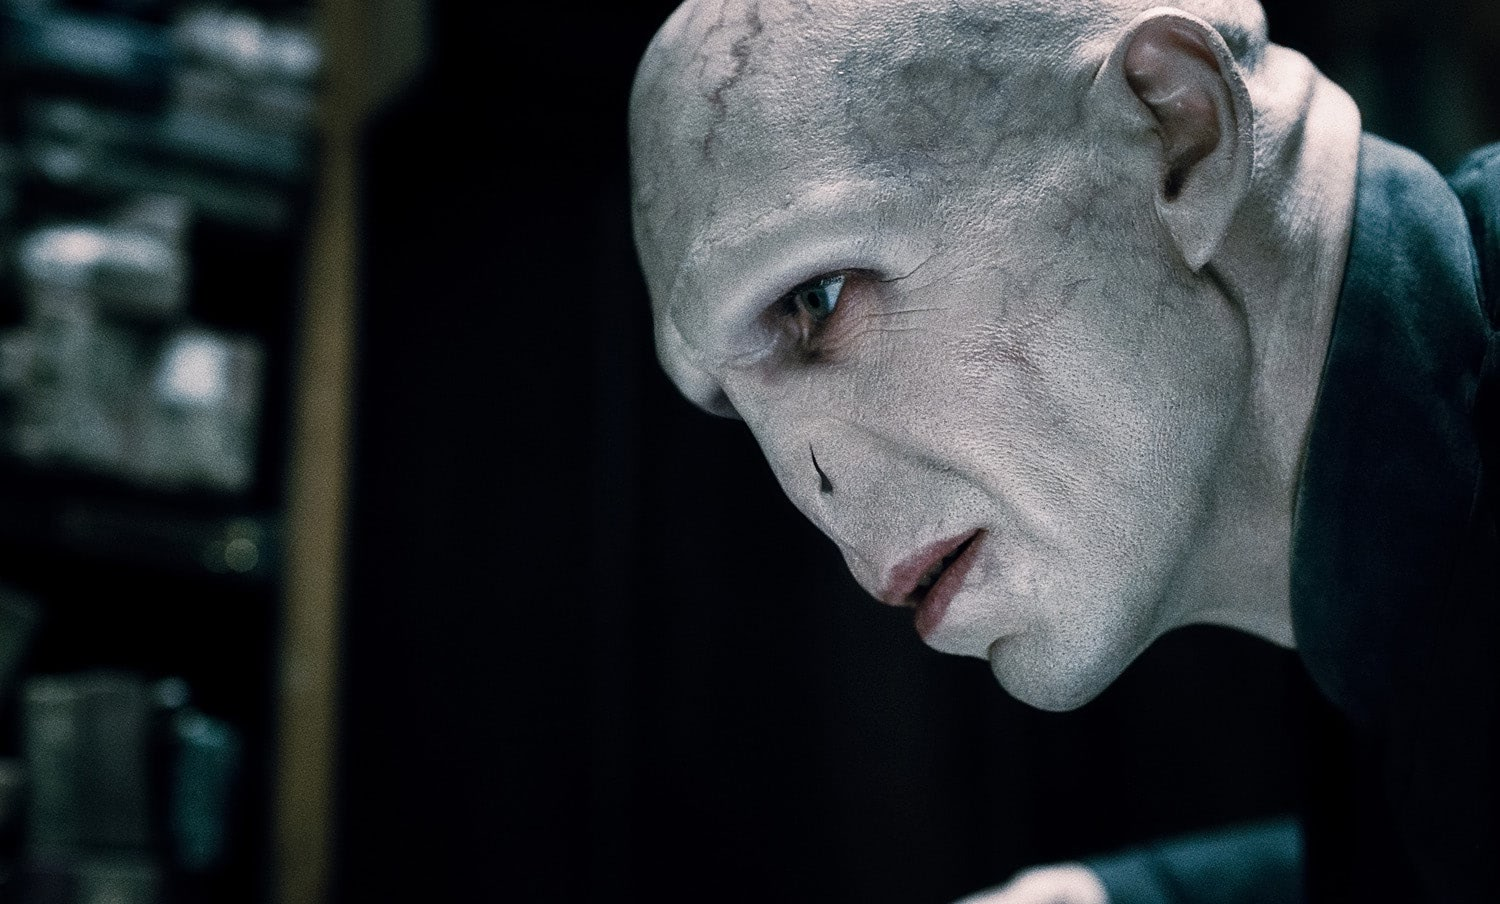 Lord Voldemort stares